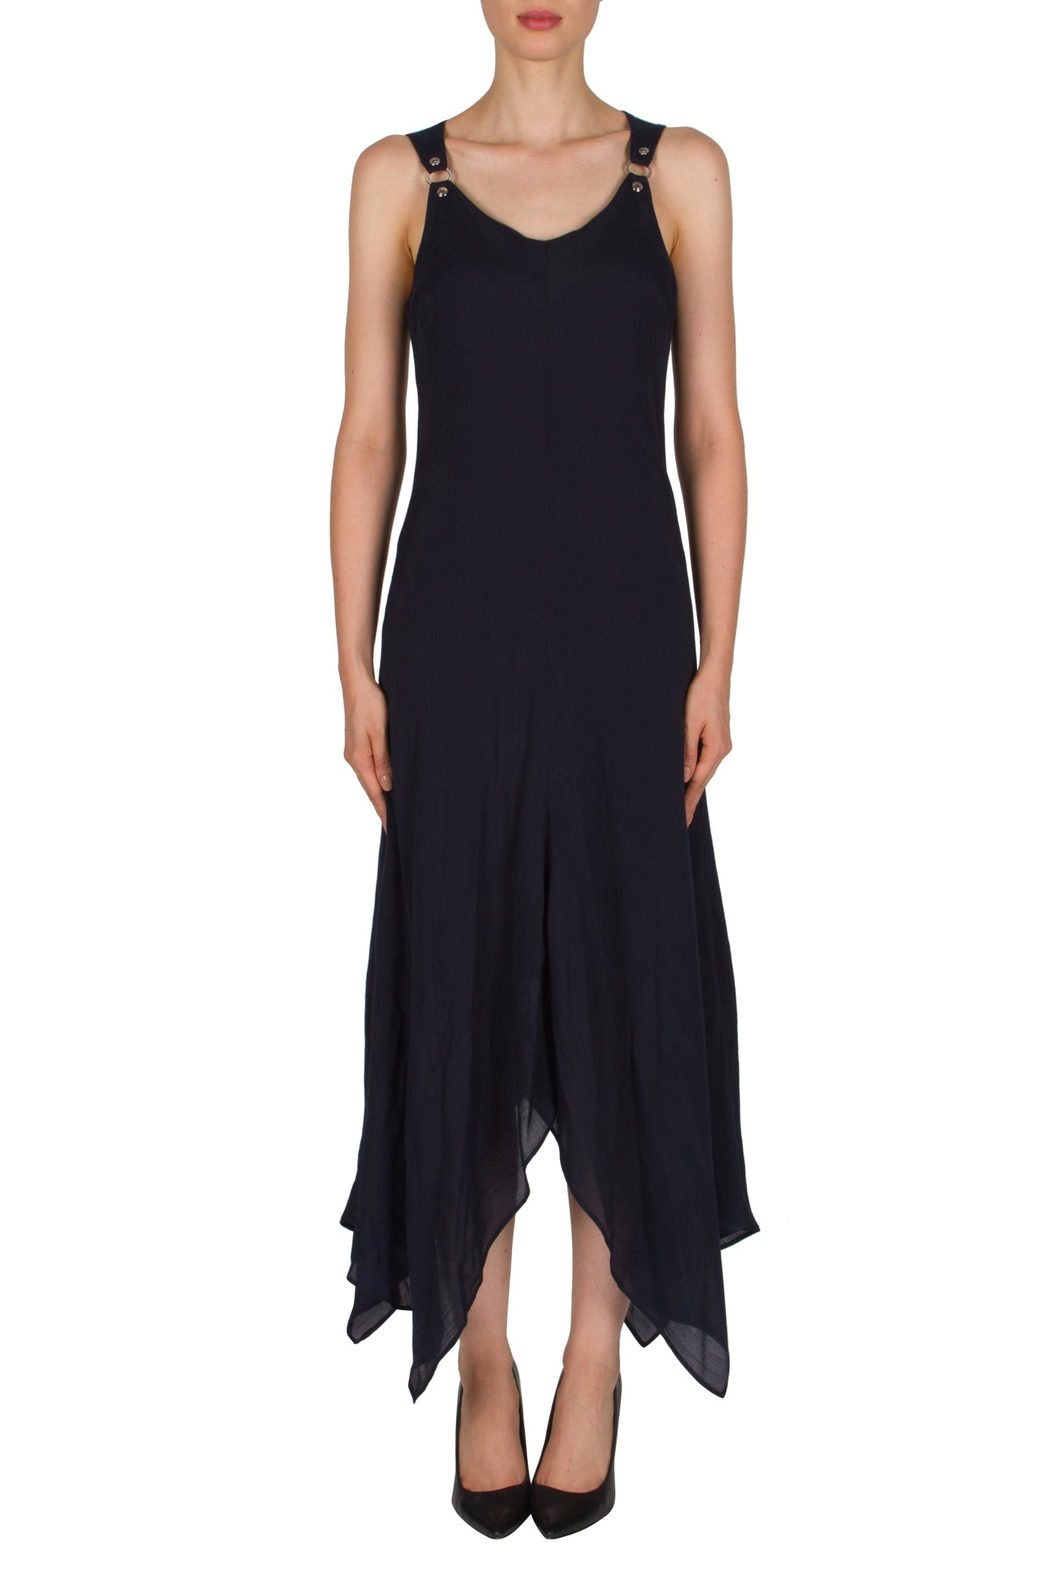 Joseph Ribkoff Lined Tank Dress - Main Image